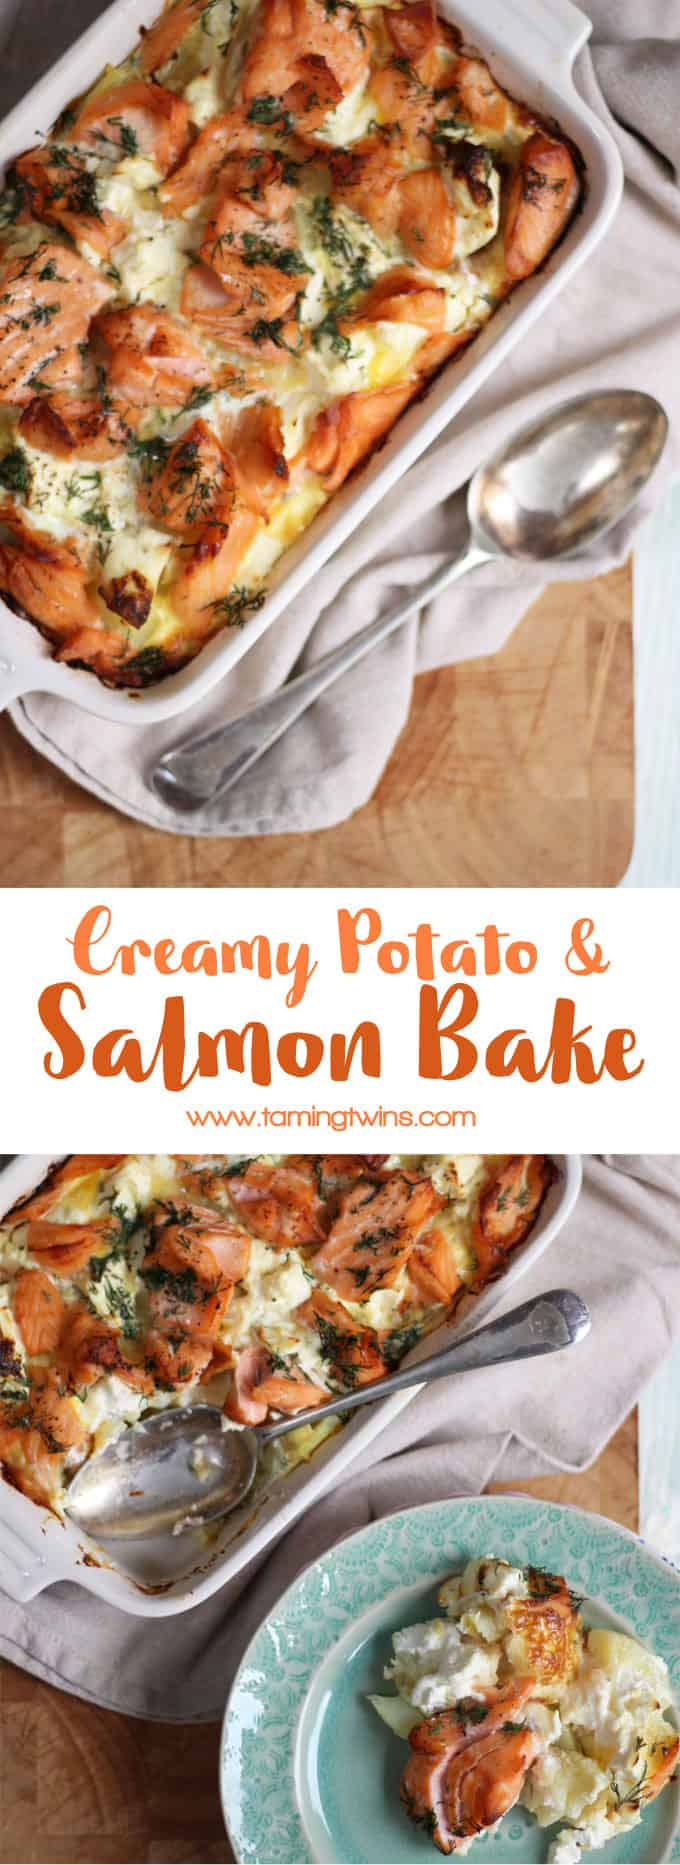 Creamy salmon bake recipe with norwegian salmon taming twins a delicious warming comfort food creamy salmon bake carb fuelled cosiness in a ccuart Image collections